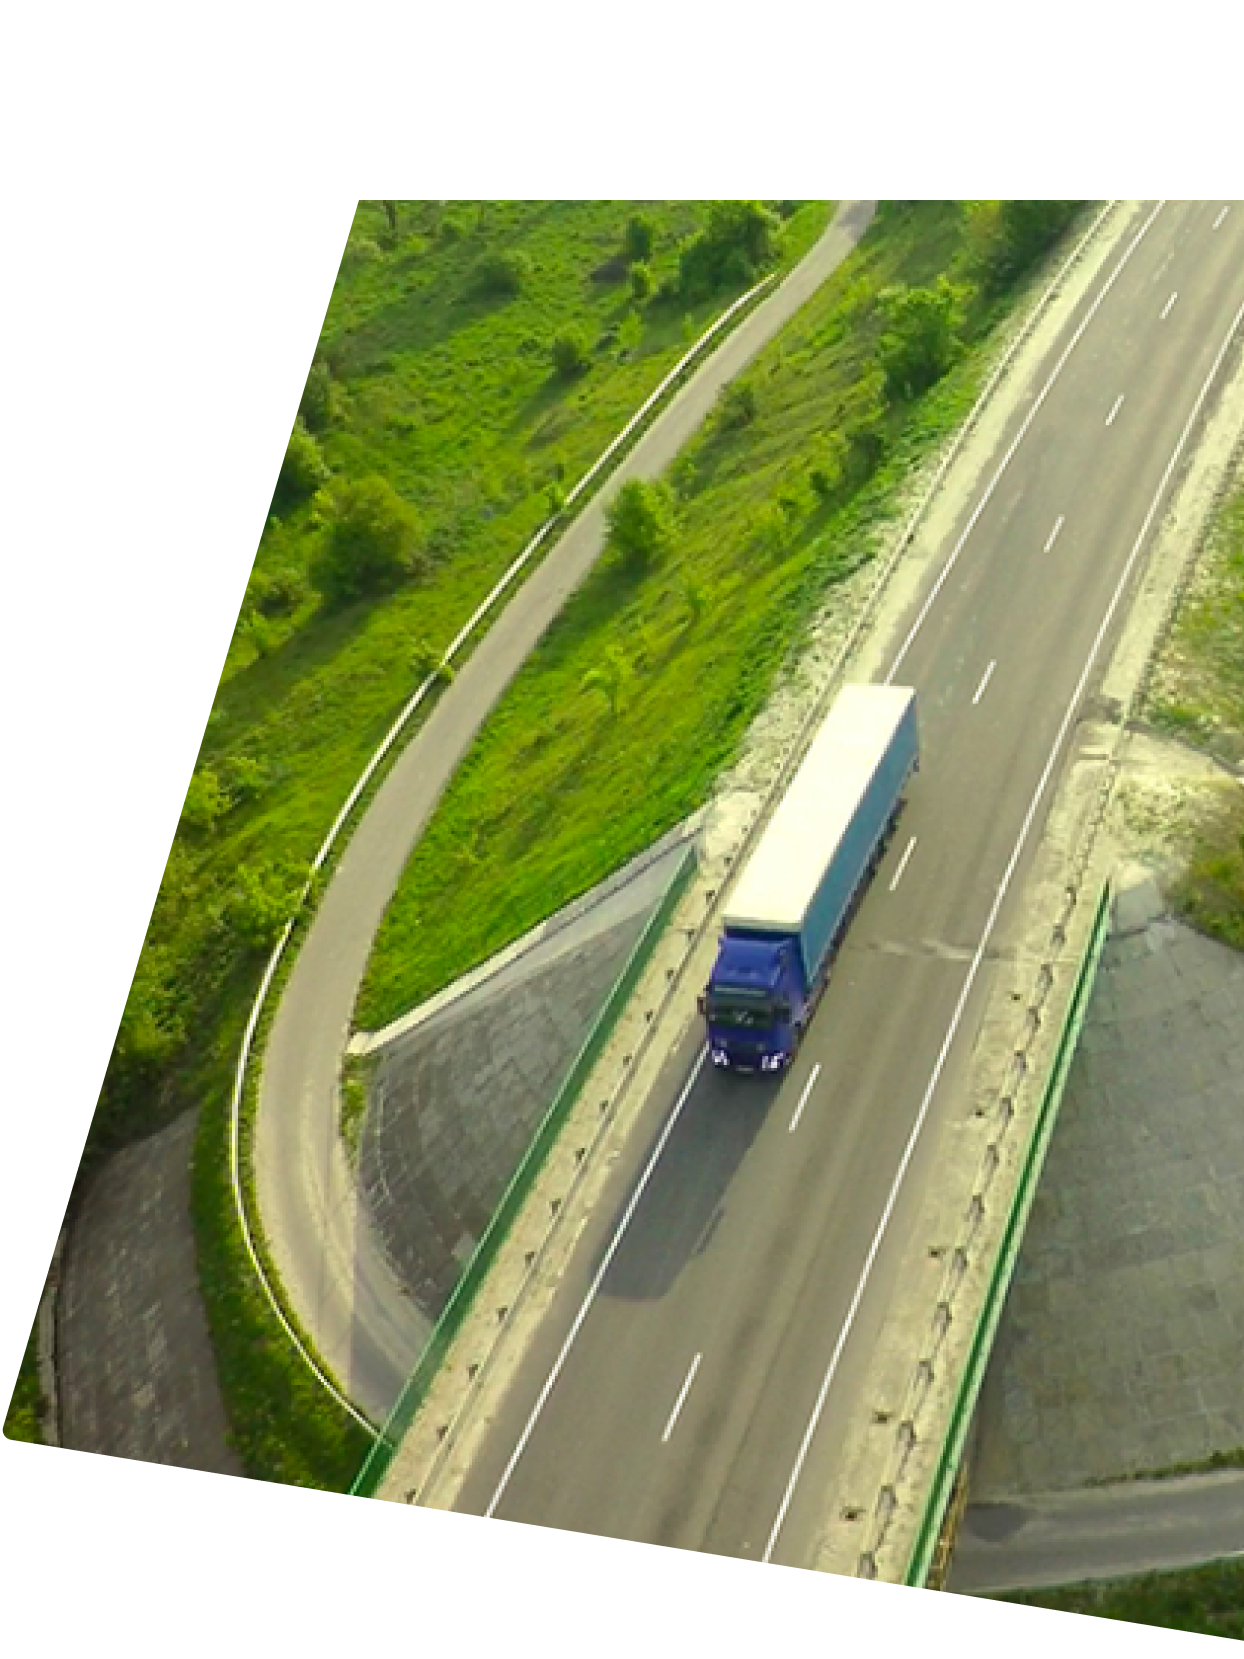 A truck on a road